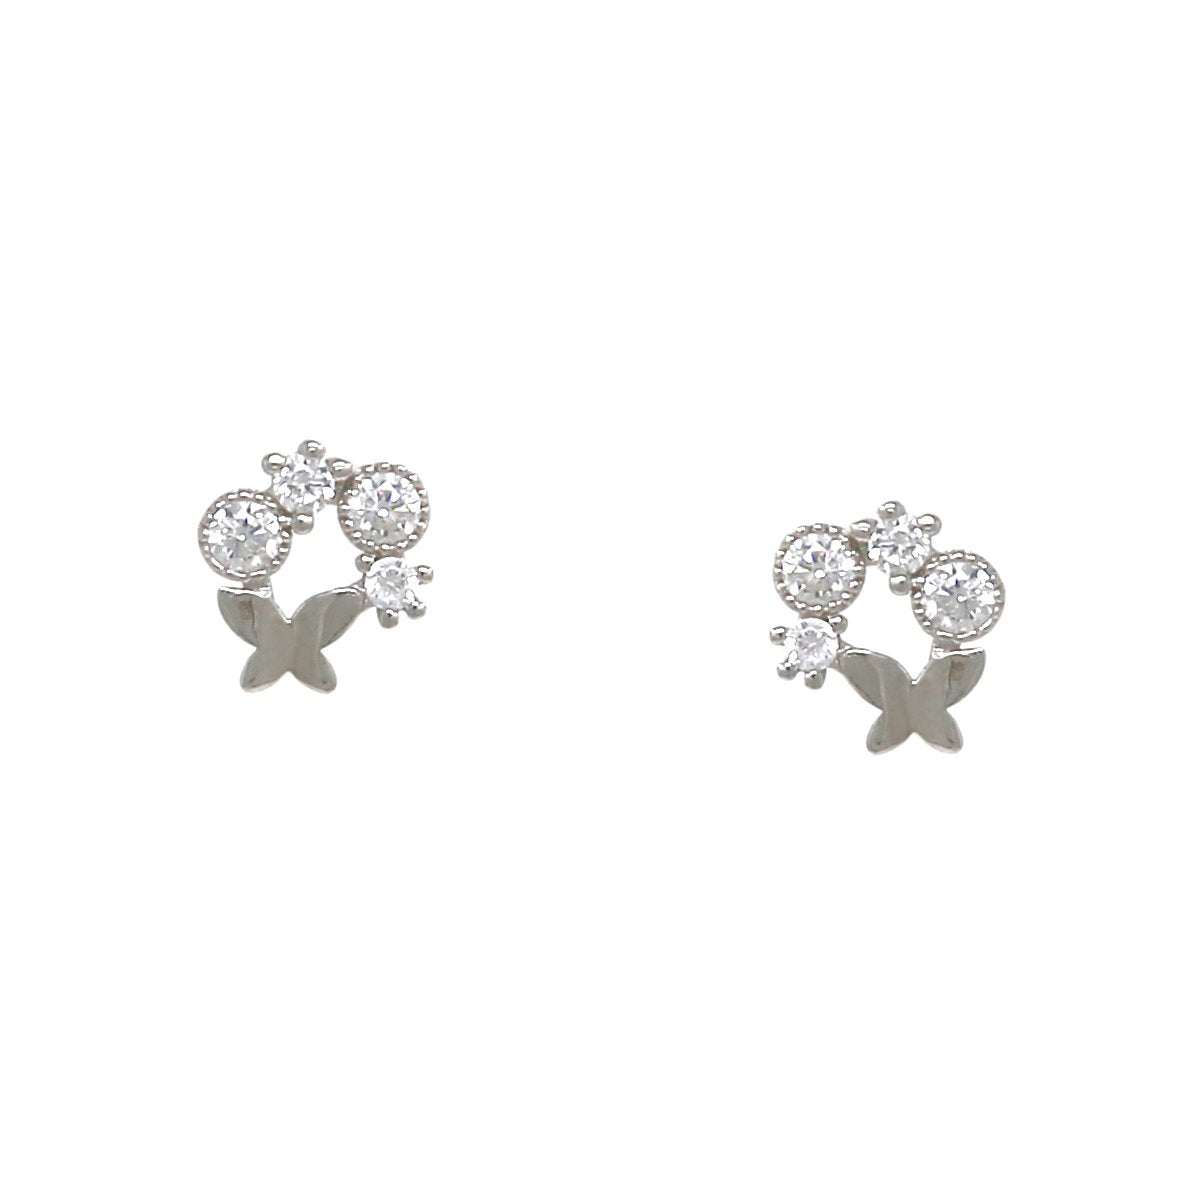 BITZ 925 STERLING SILVER BUTTERFLY CUBIC ZIRCONIA PAVE STUD EARRINGS